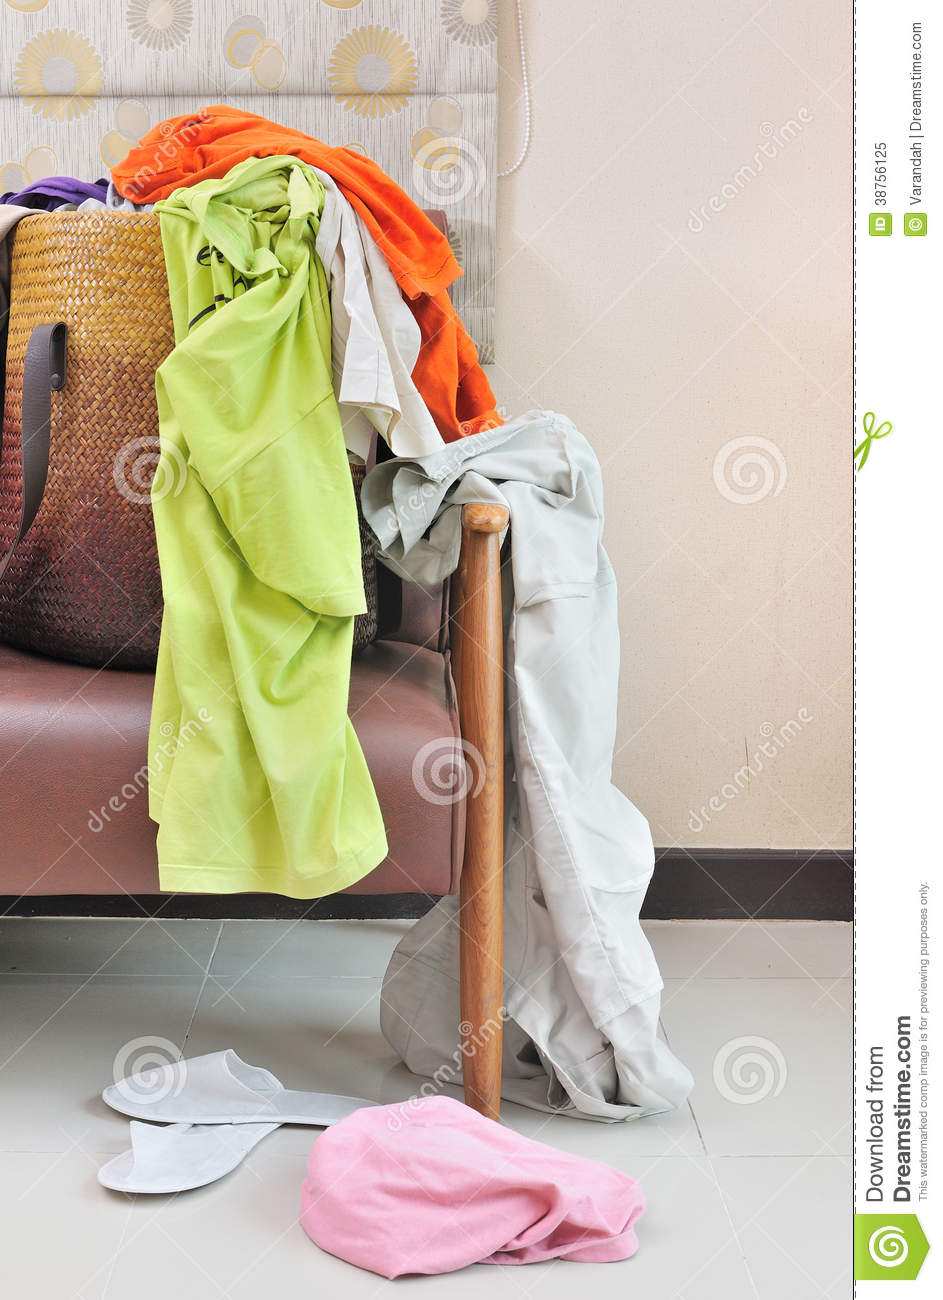 Tremendous Messy Clothes Scattered On A Leather Sofa Stock Image Onthecornerstone Fun Painted Chair Ideas Images Onthecornerstoneorg